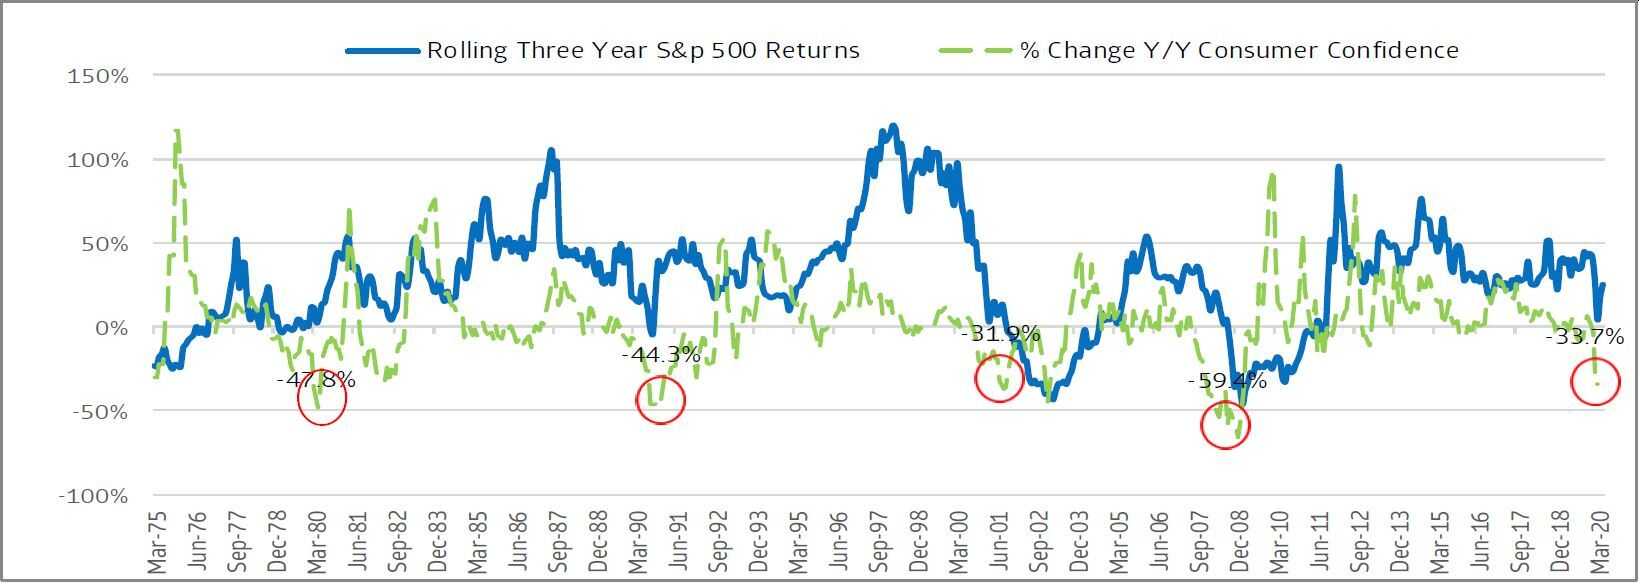 Drawdowns in consumer confidence since 1975 tend to lead strong multi-year S&P 500 total returns.